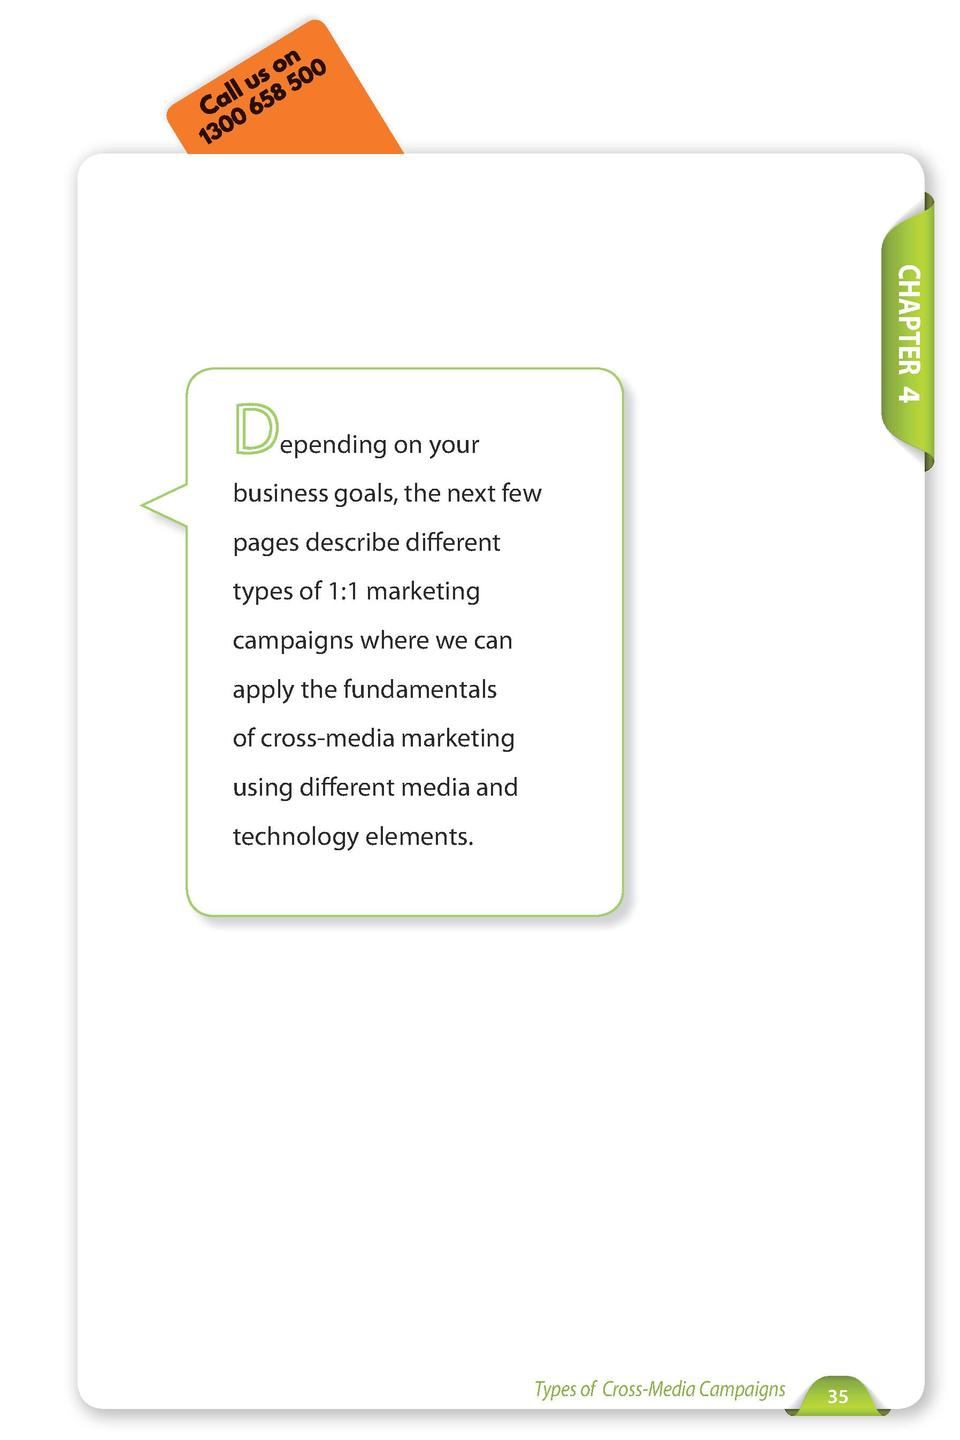 Call Us  Tel  212-479-5166  www.xmpie.com  CHAPTER 4  epending on your business goals, the next few pages describe differe...